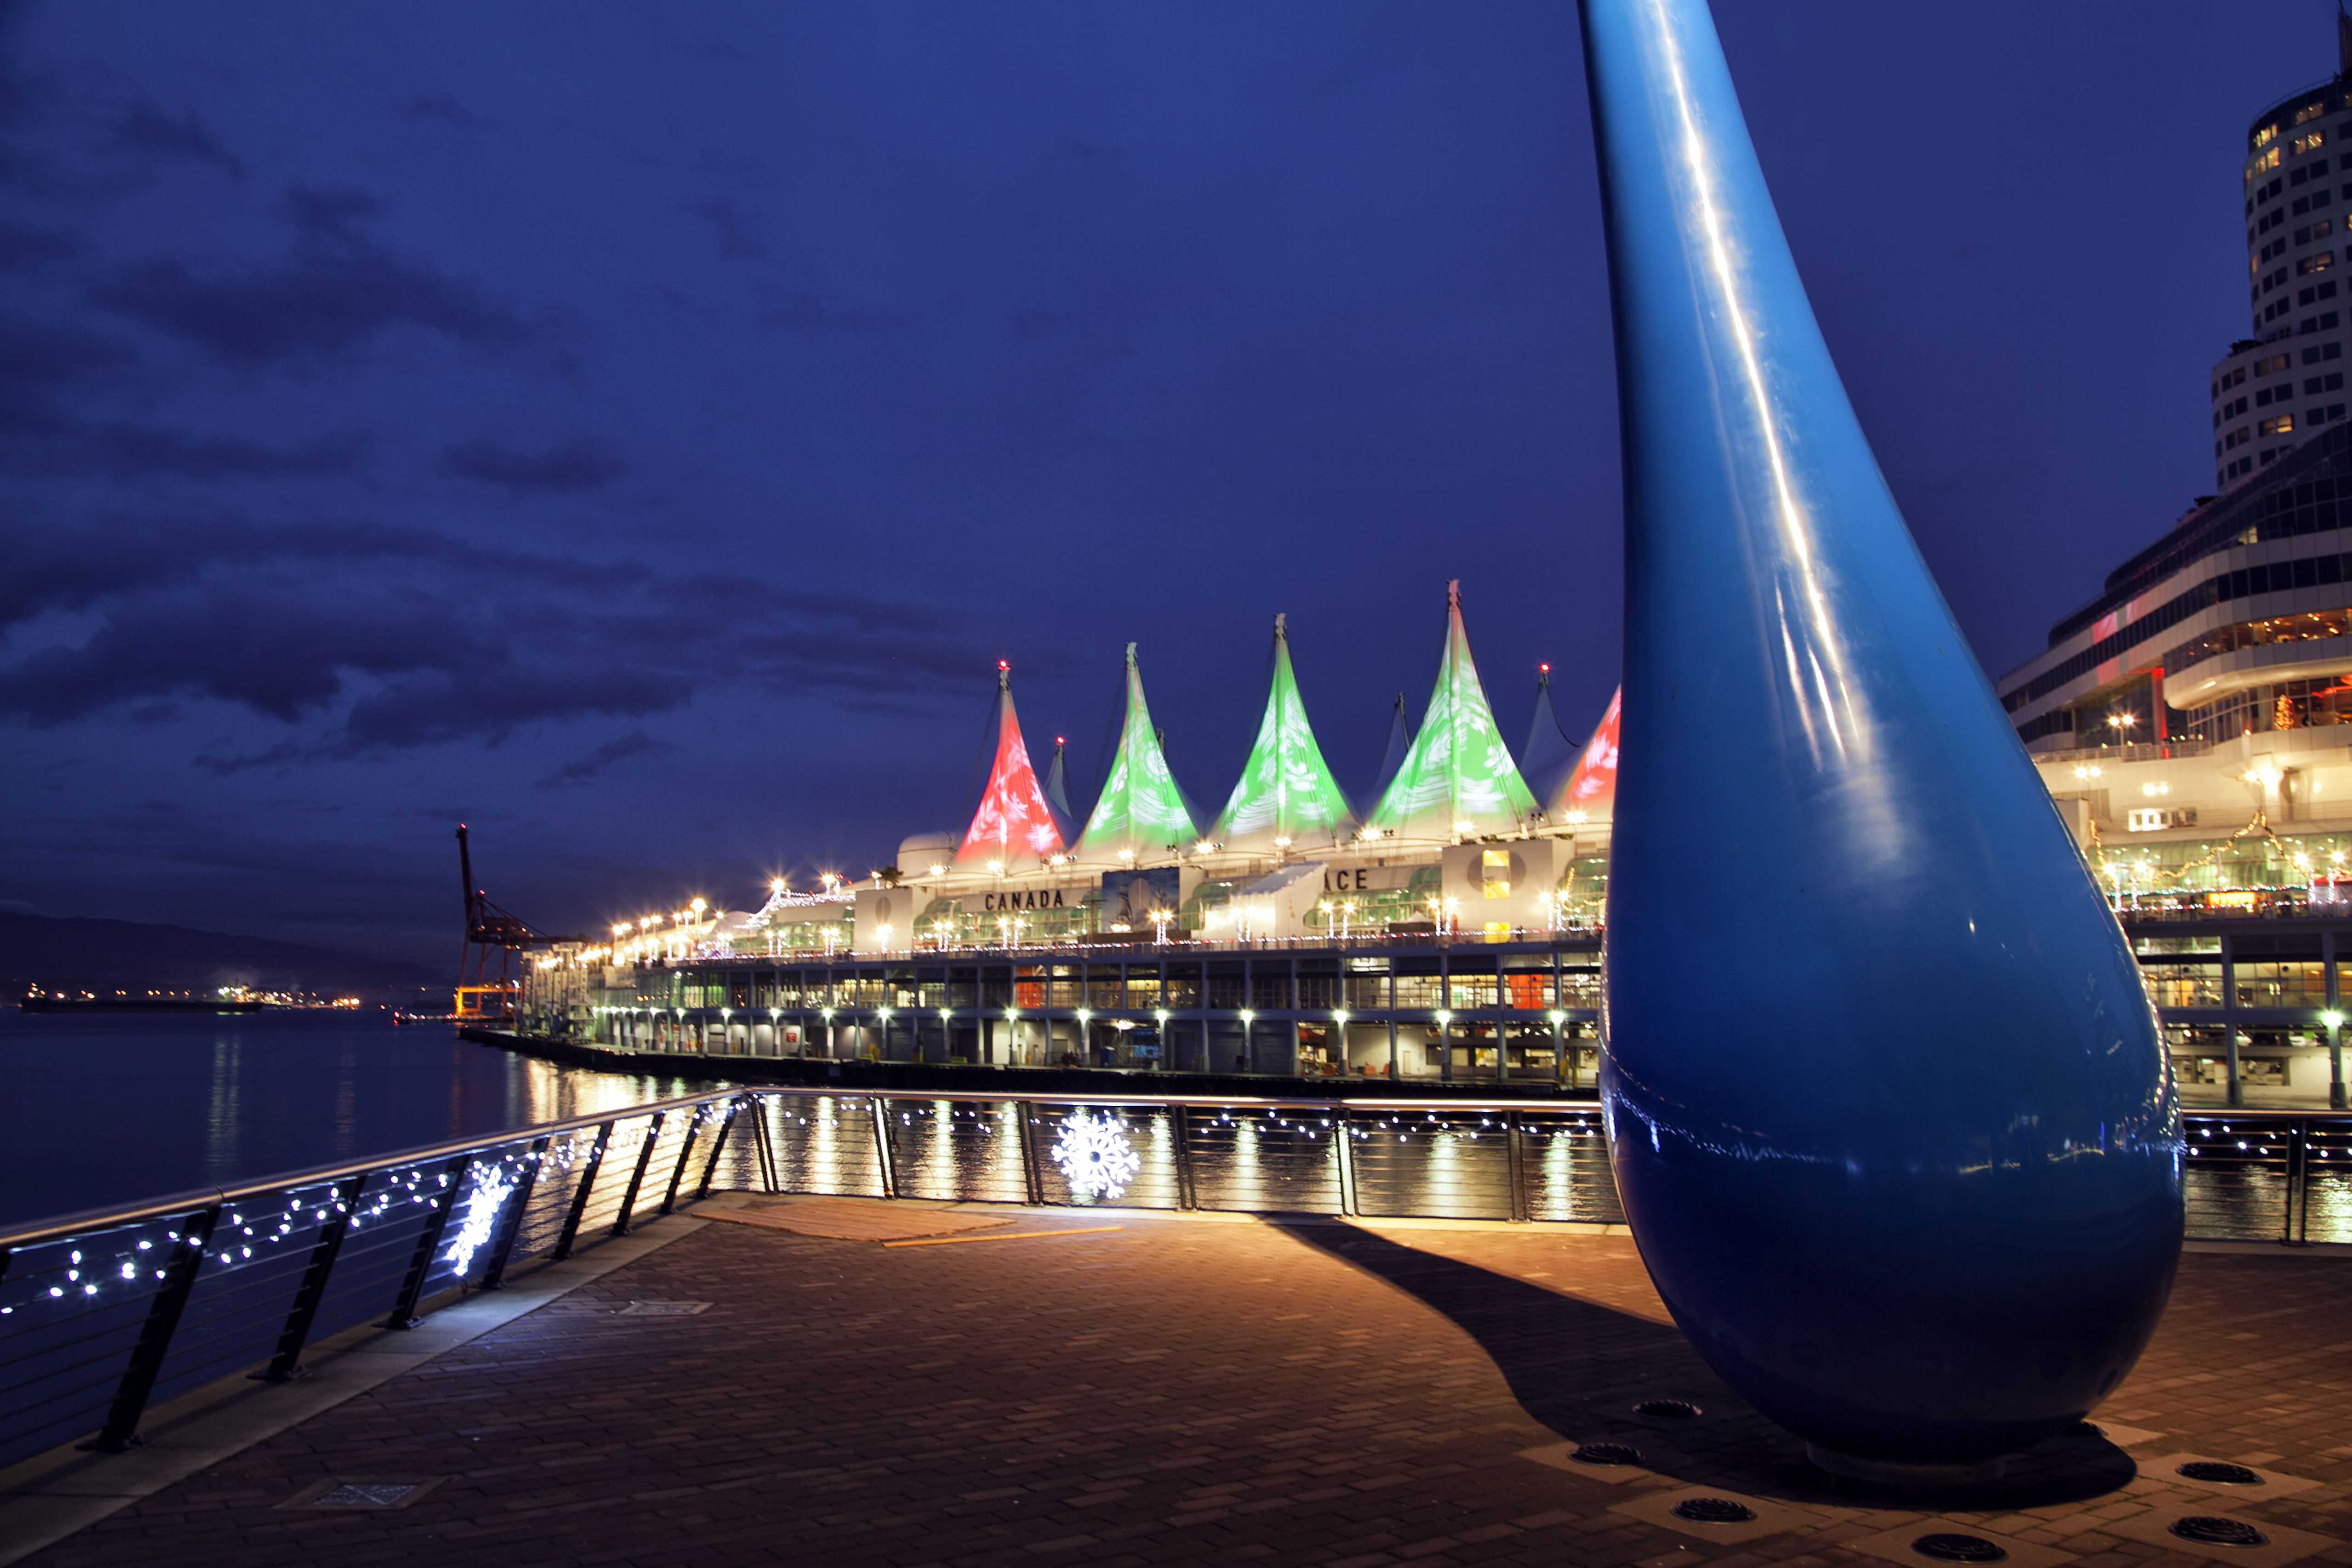 Things to Do on Christmas Day in Vancouver